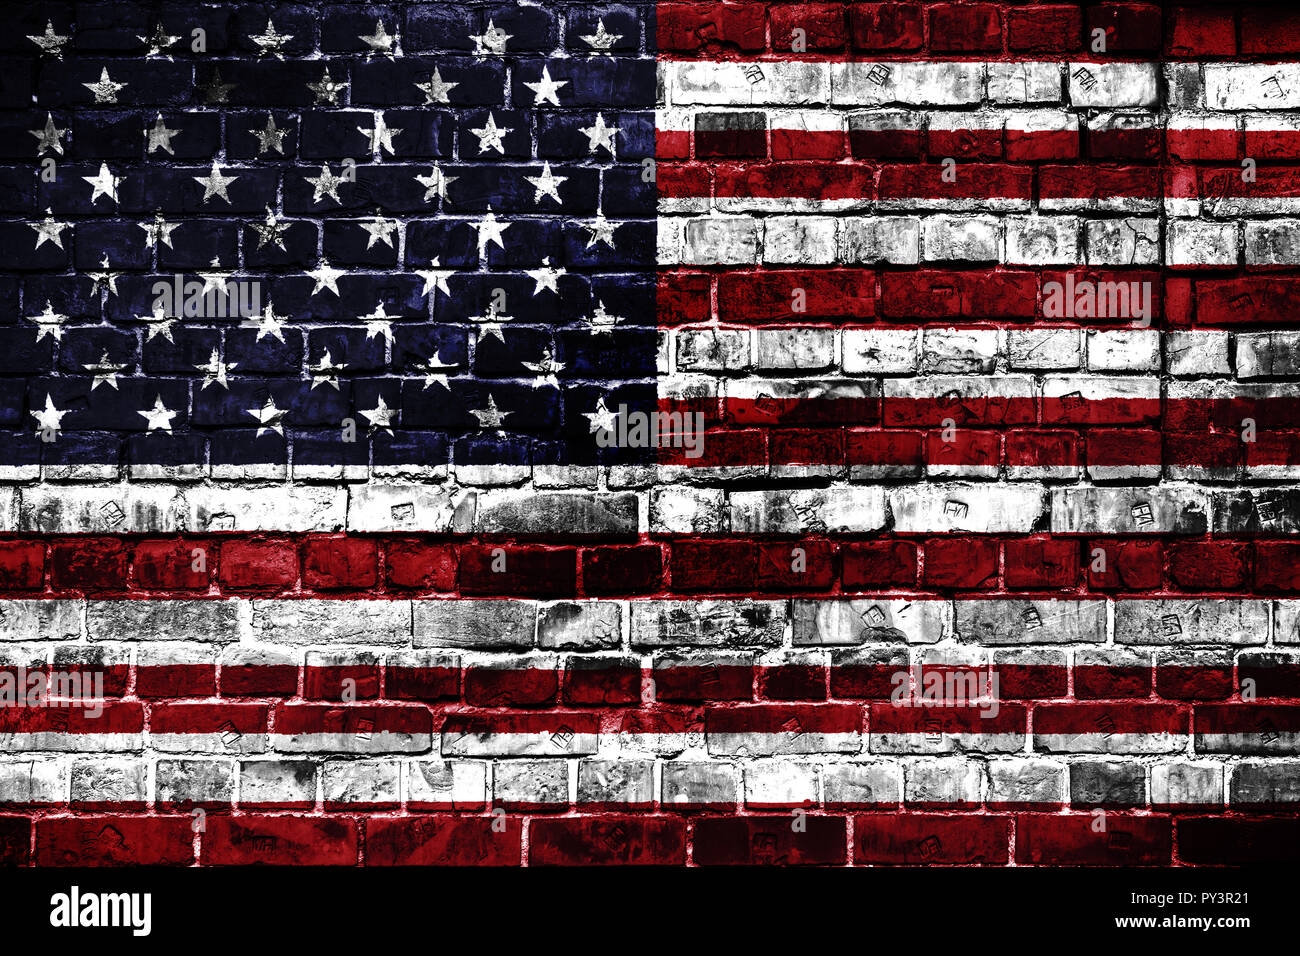 National Flag Of Usa On A Brick Background Concept Image For Usa